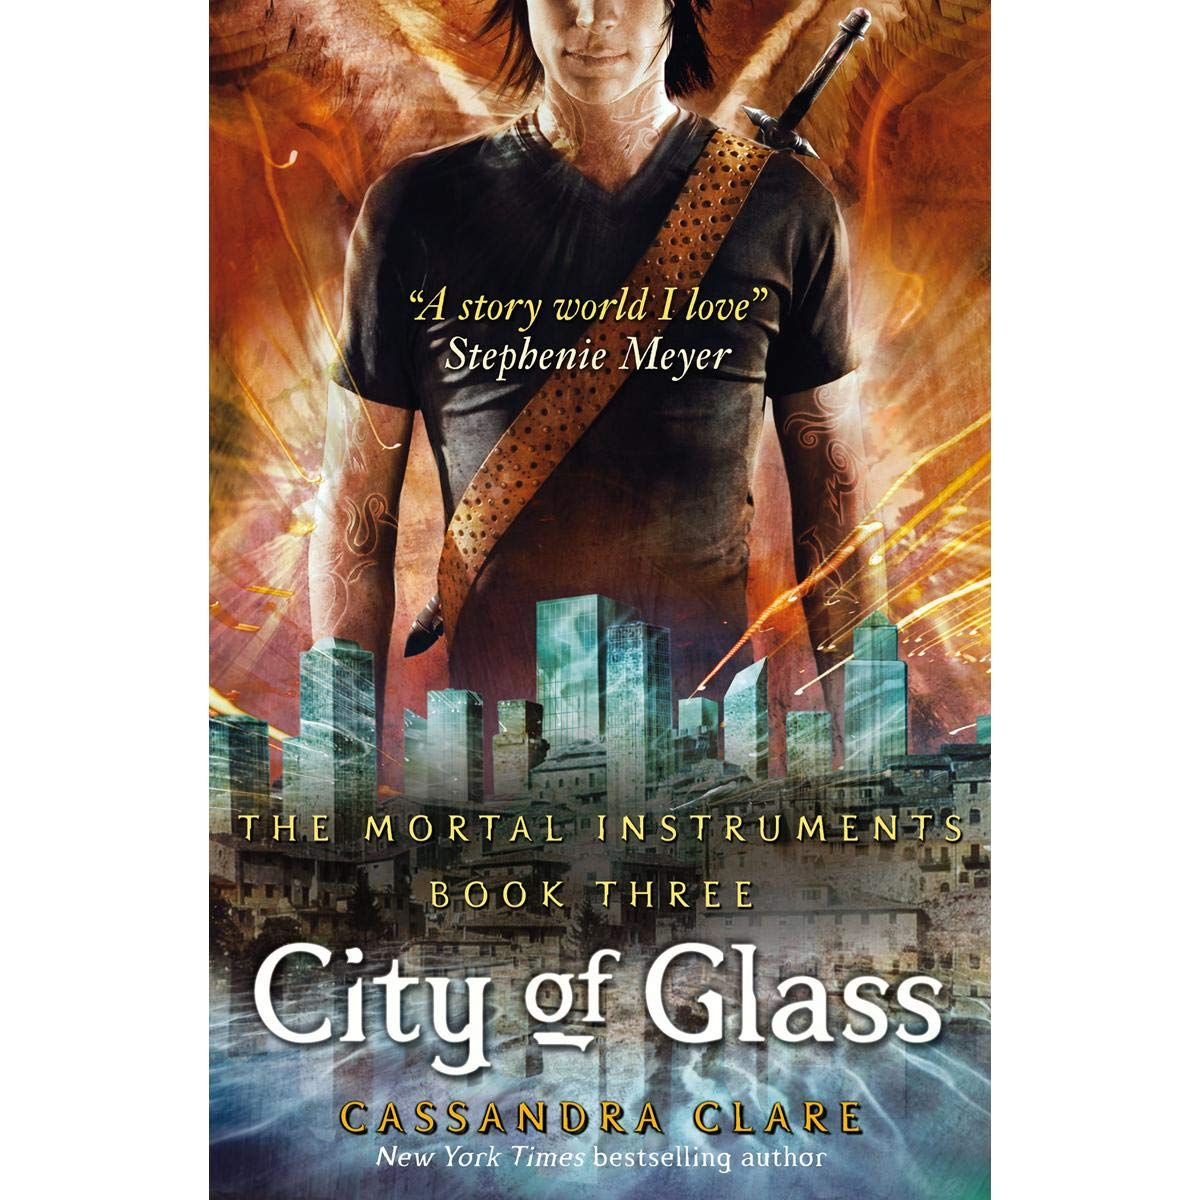 Image for City of Glass (The Mortal Instruments, Book 3)